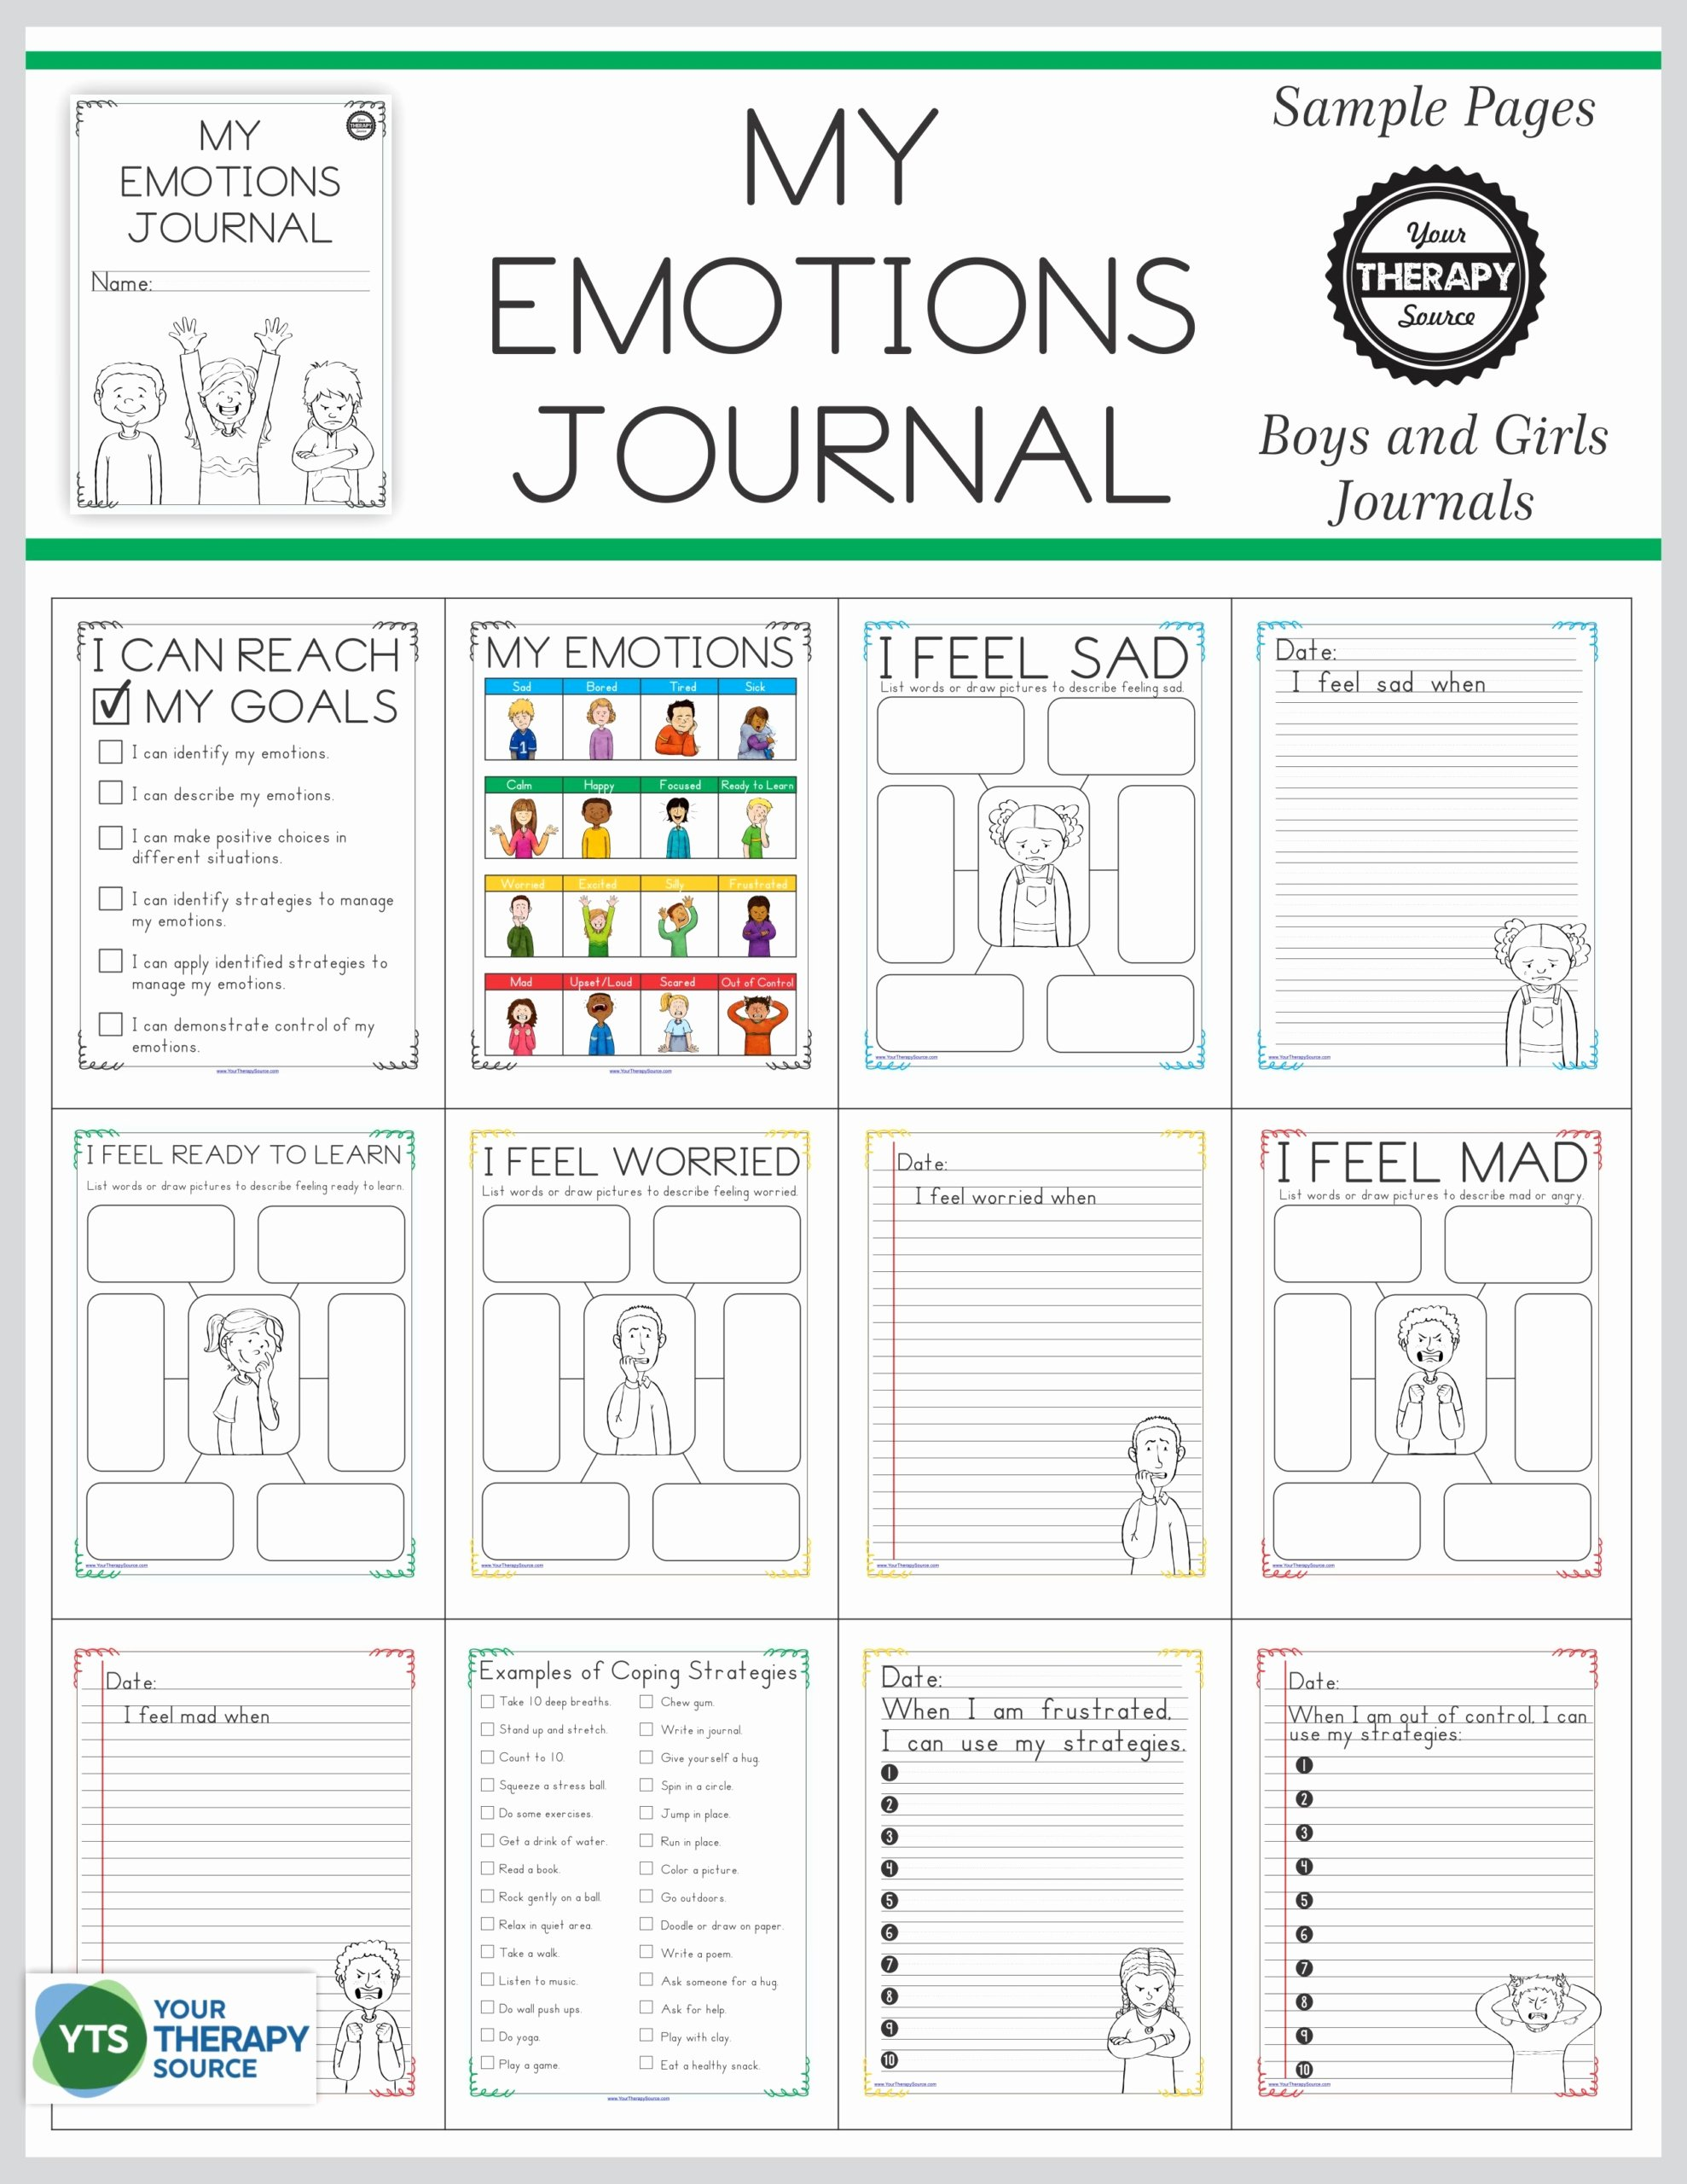 Impulse Control Worksheets for Kids Free Emotional Regulation Worksheets for Boys and Girls